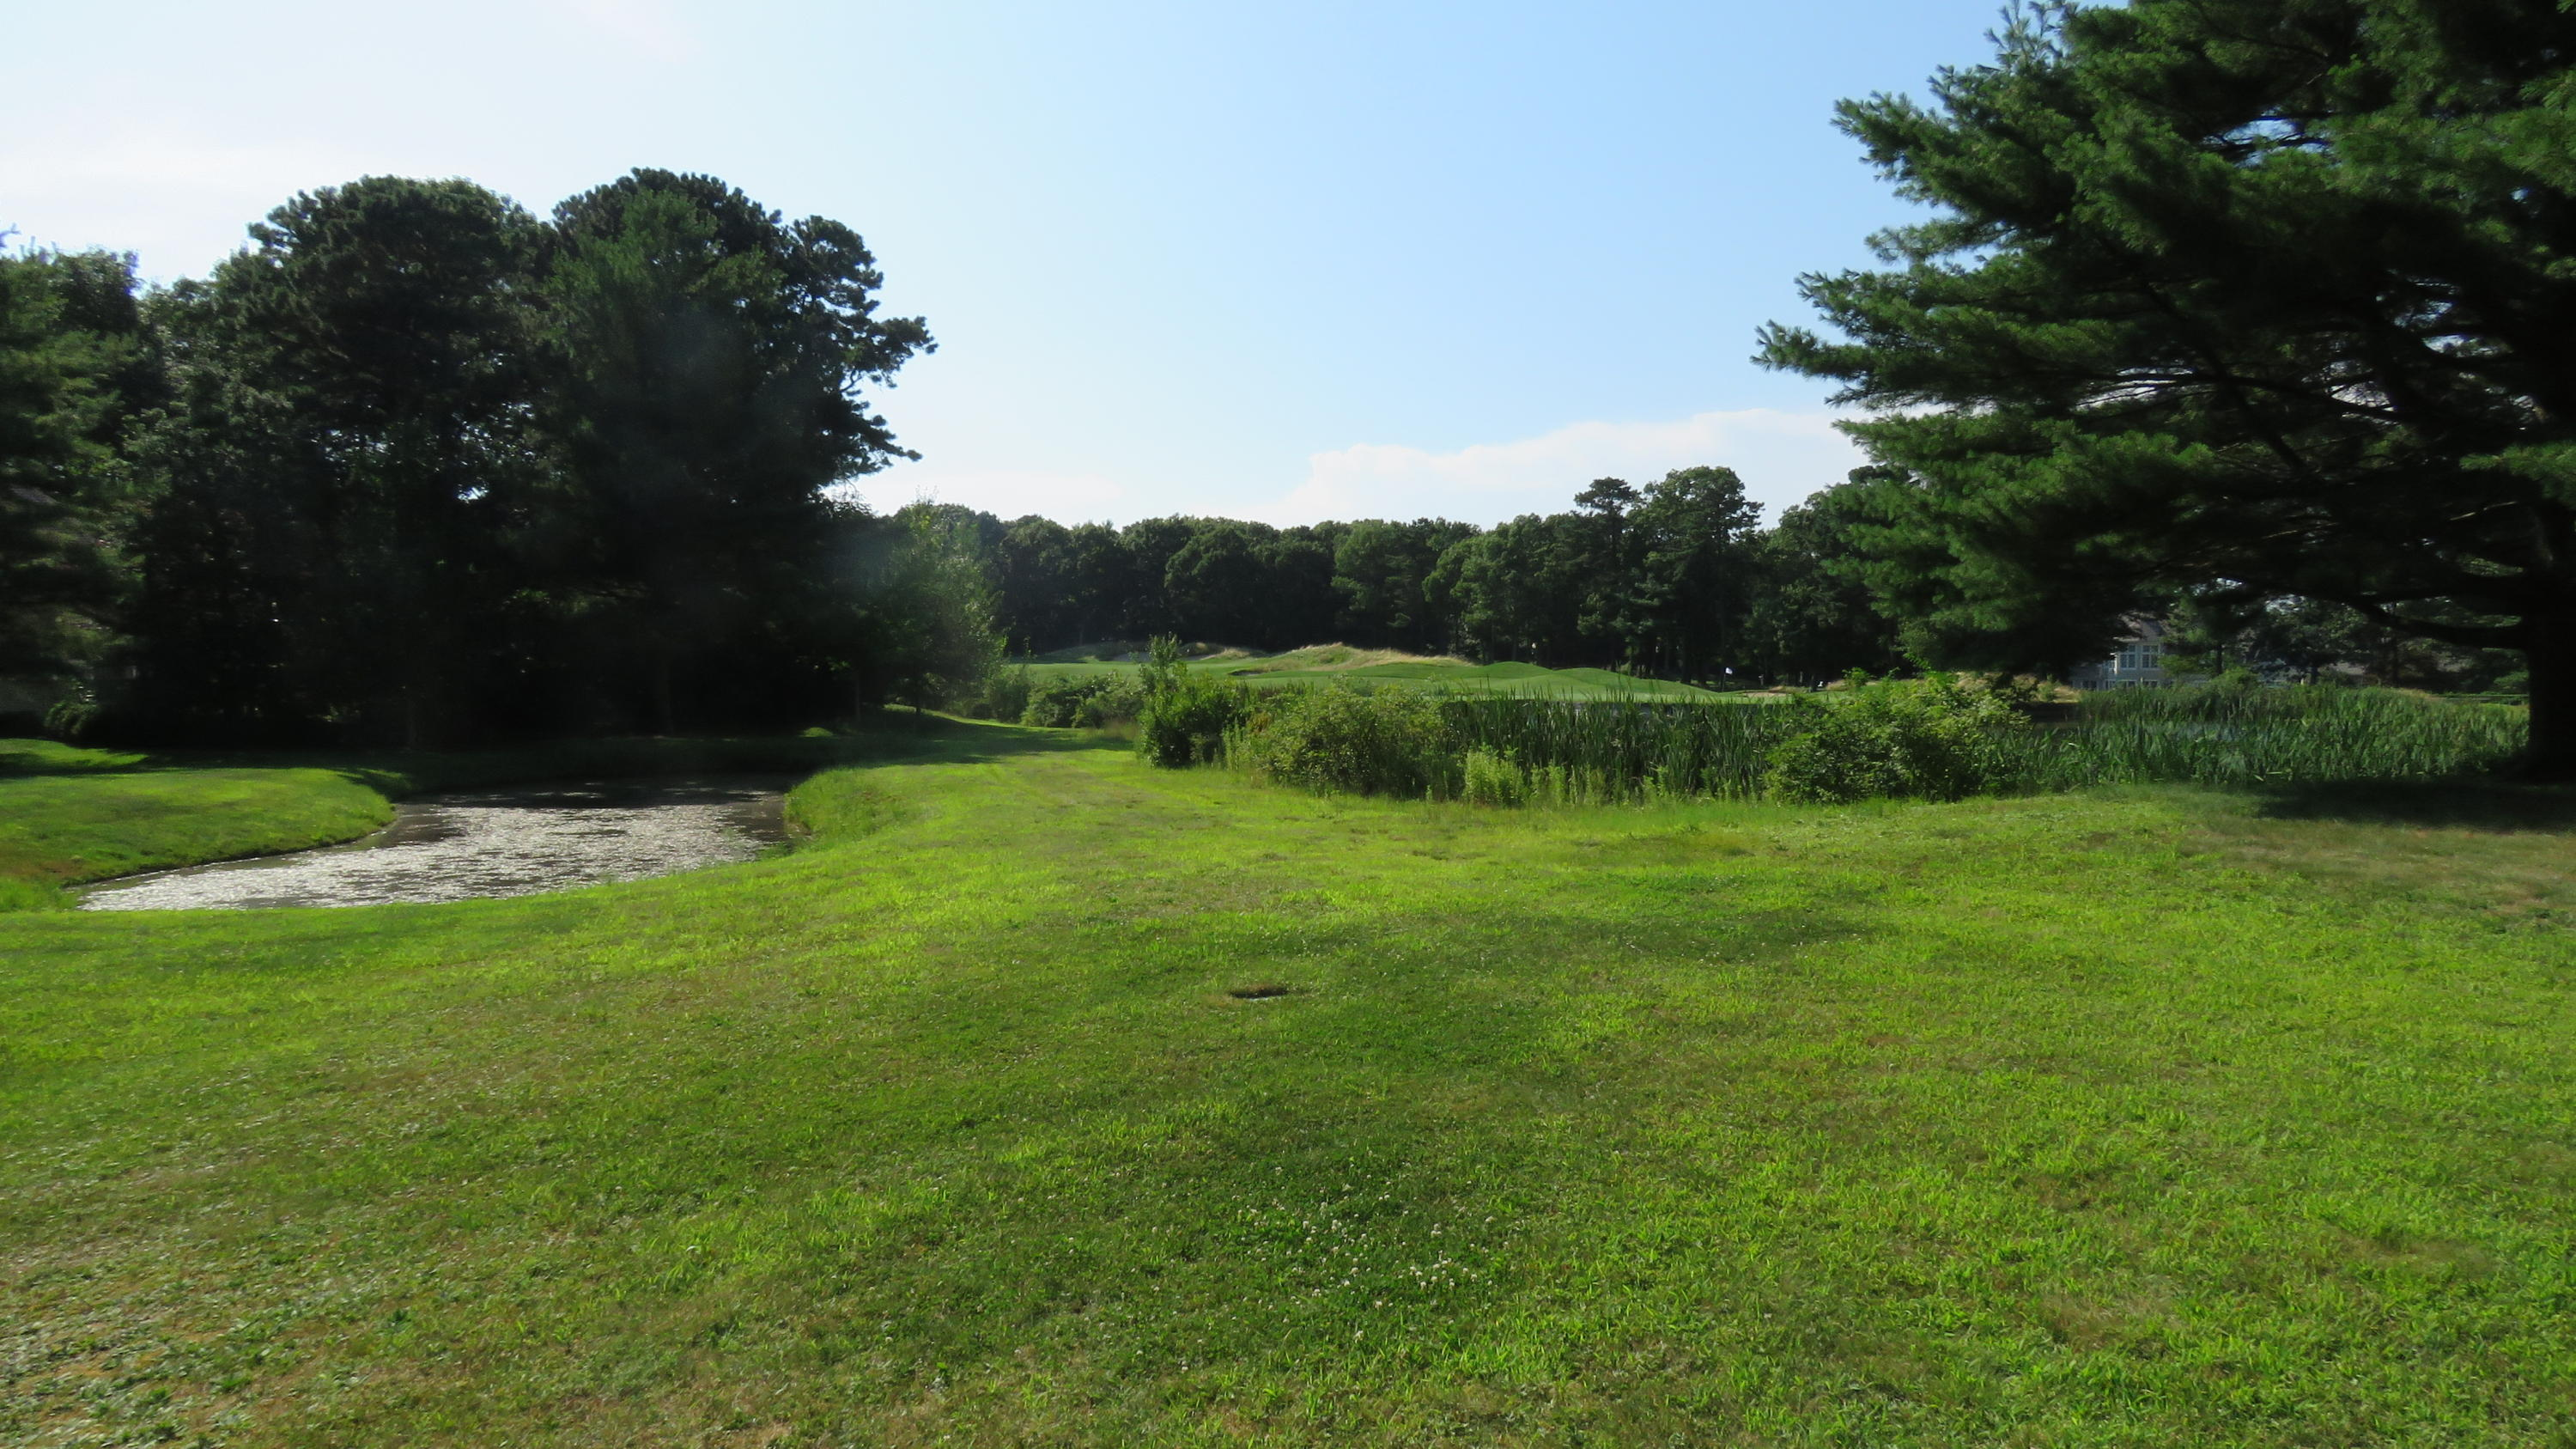 8 Reflection Drive, Sandwich, MA, 02563